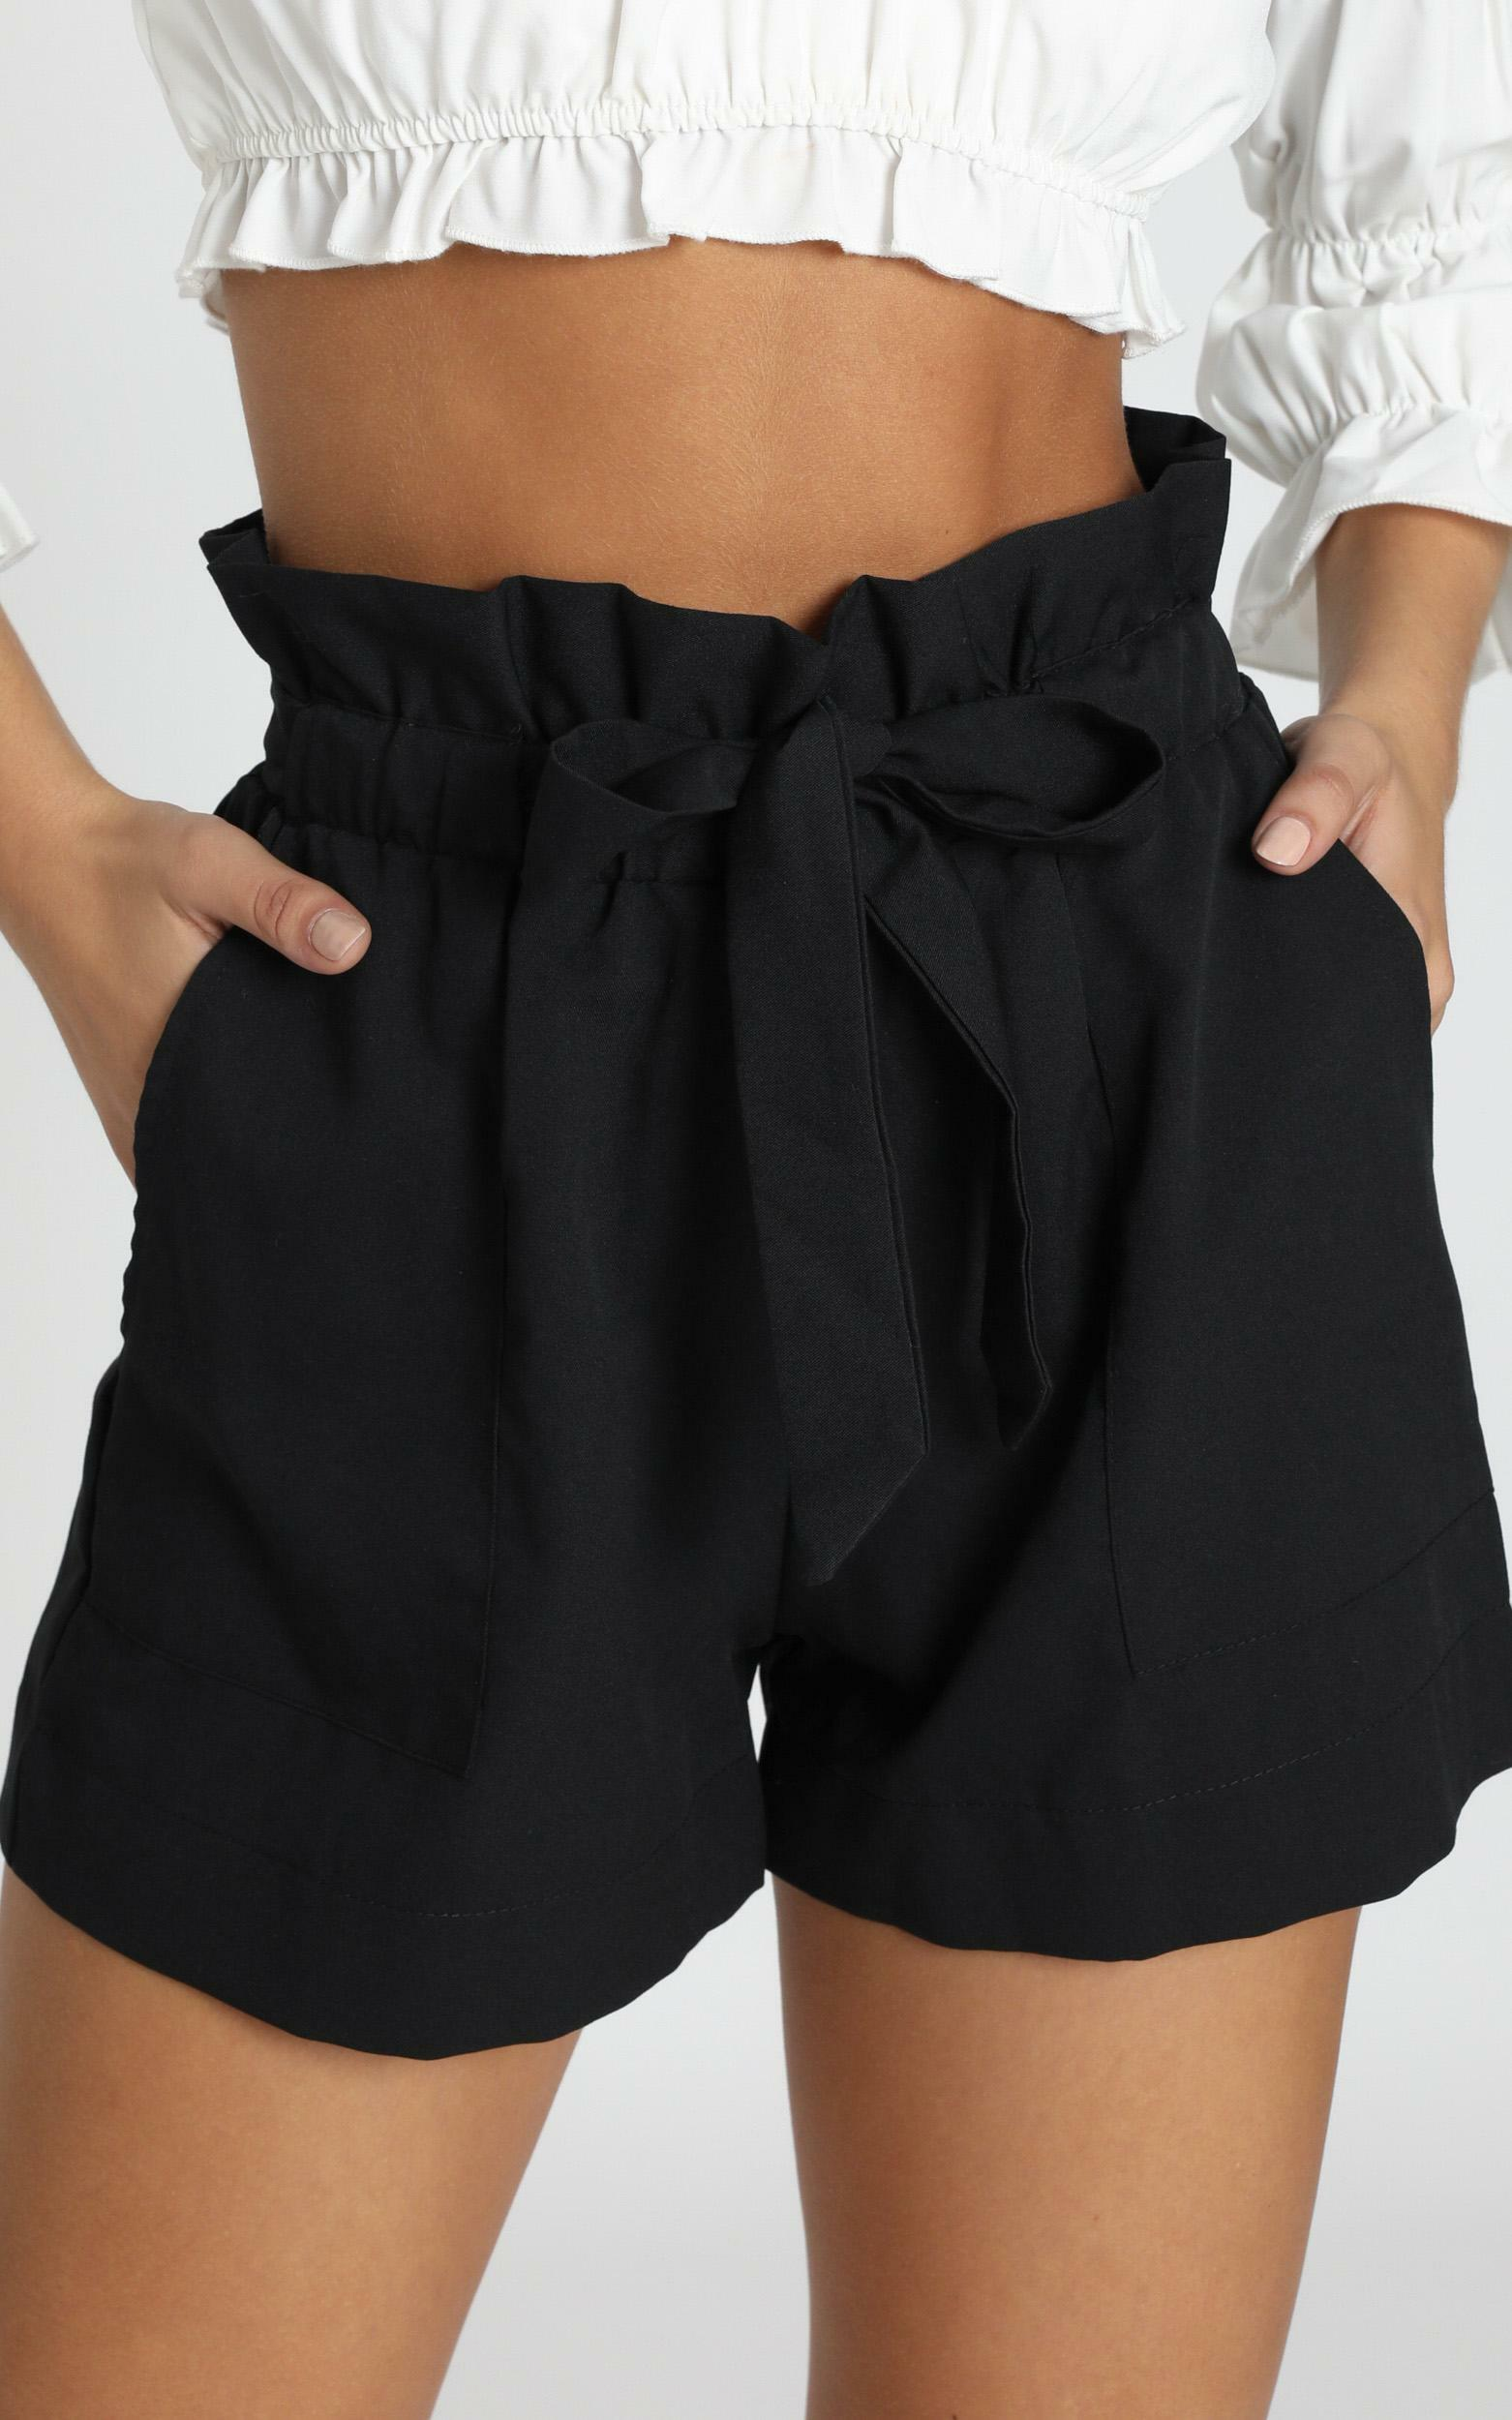 All Rounder shorts in Black - 6 (XS), Black, hi-res image number null